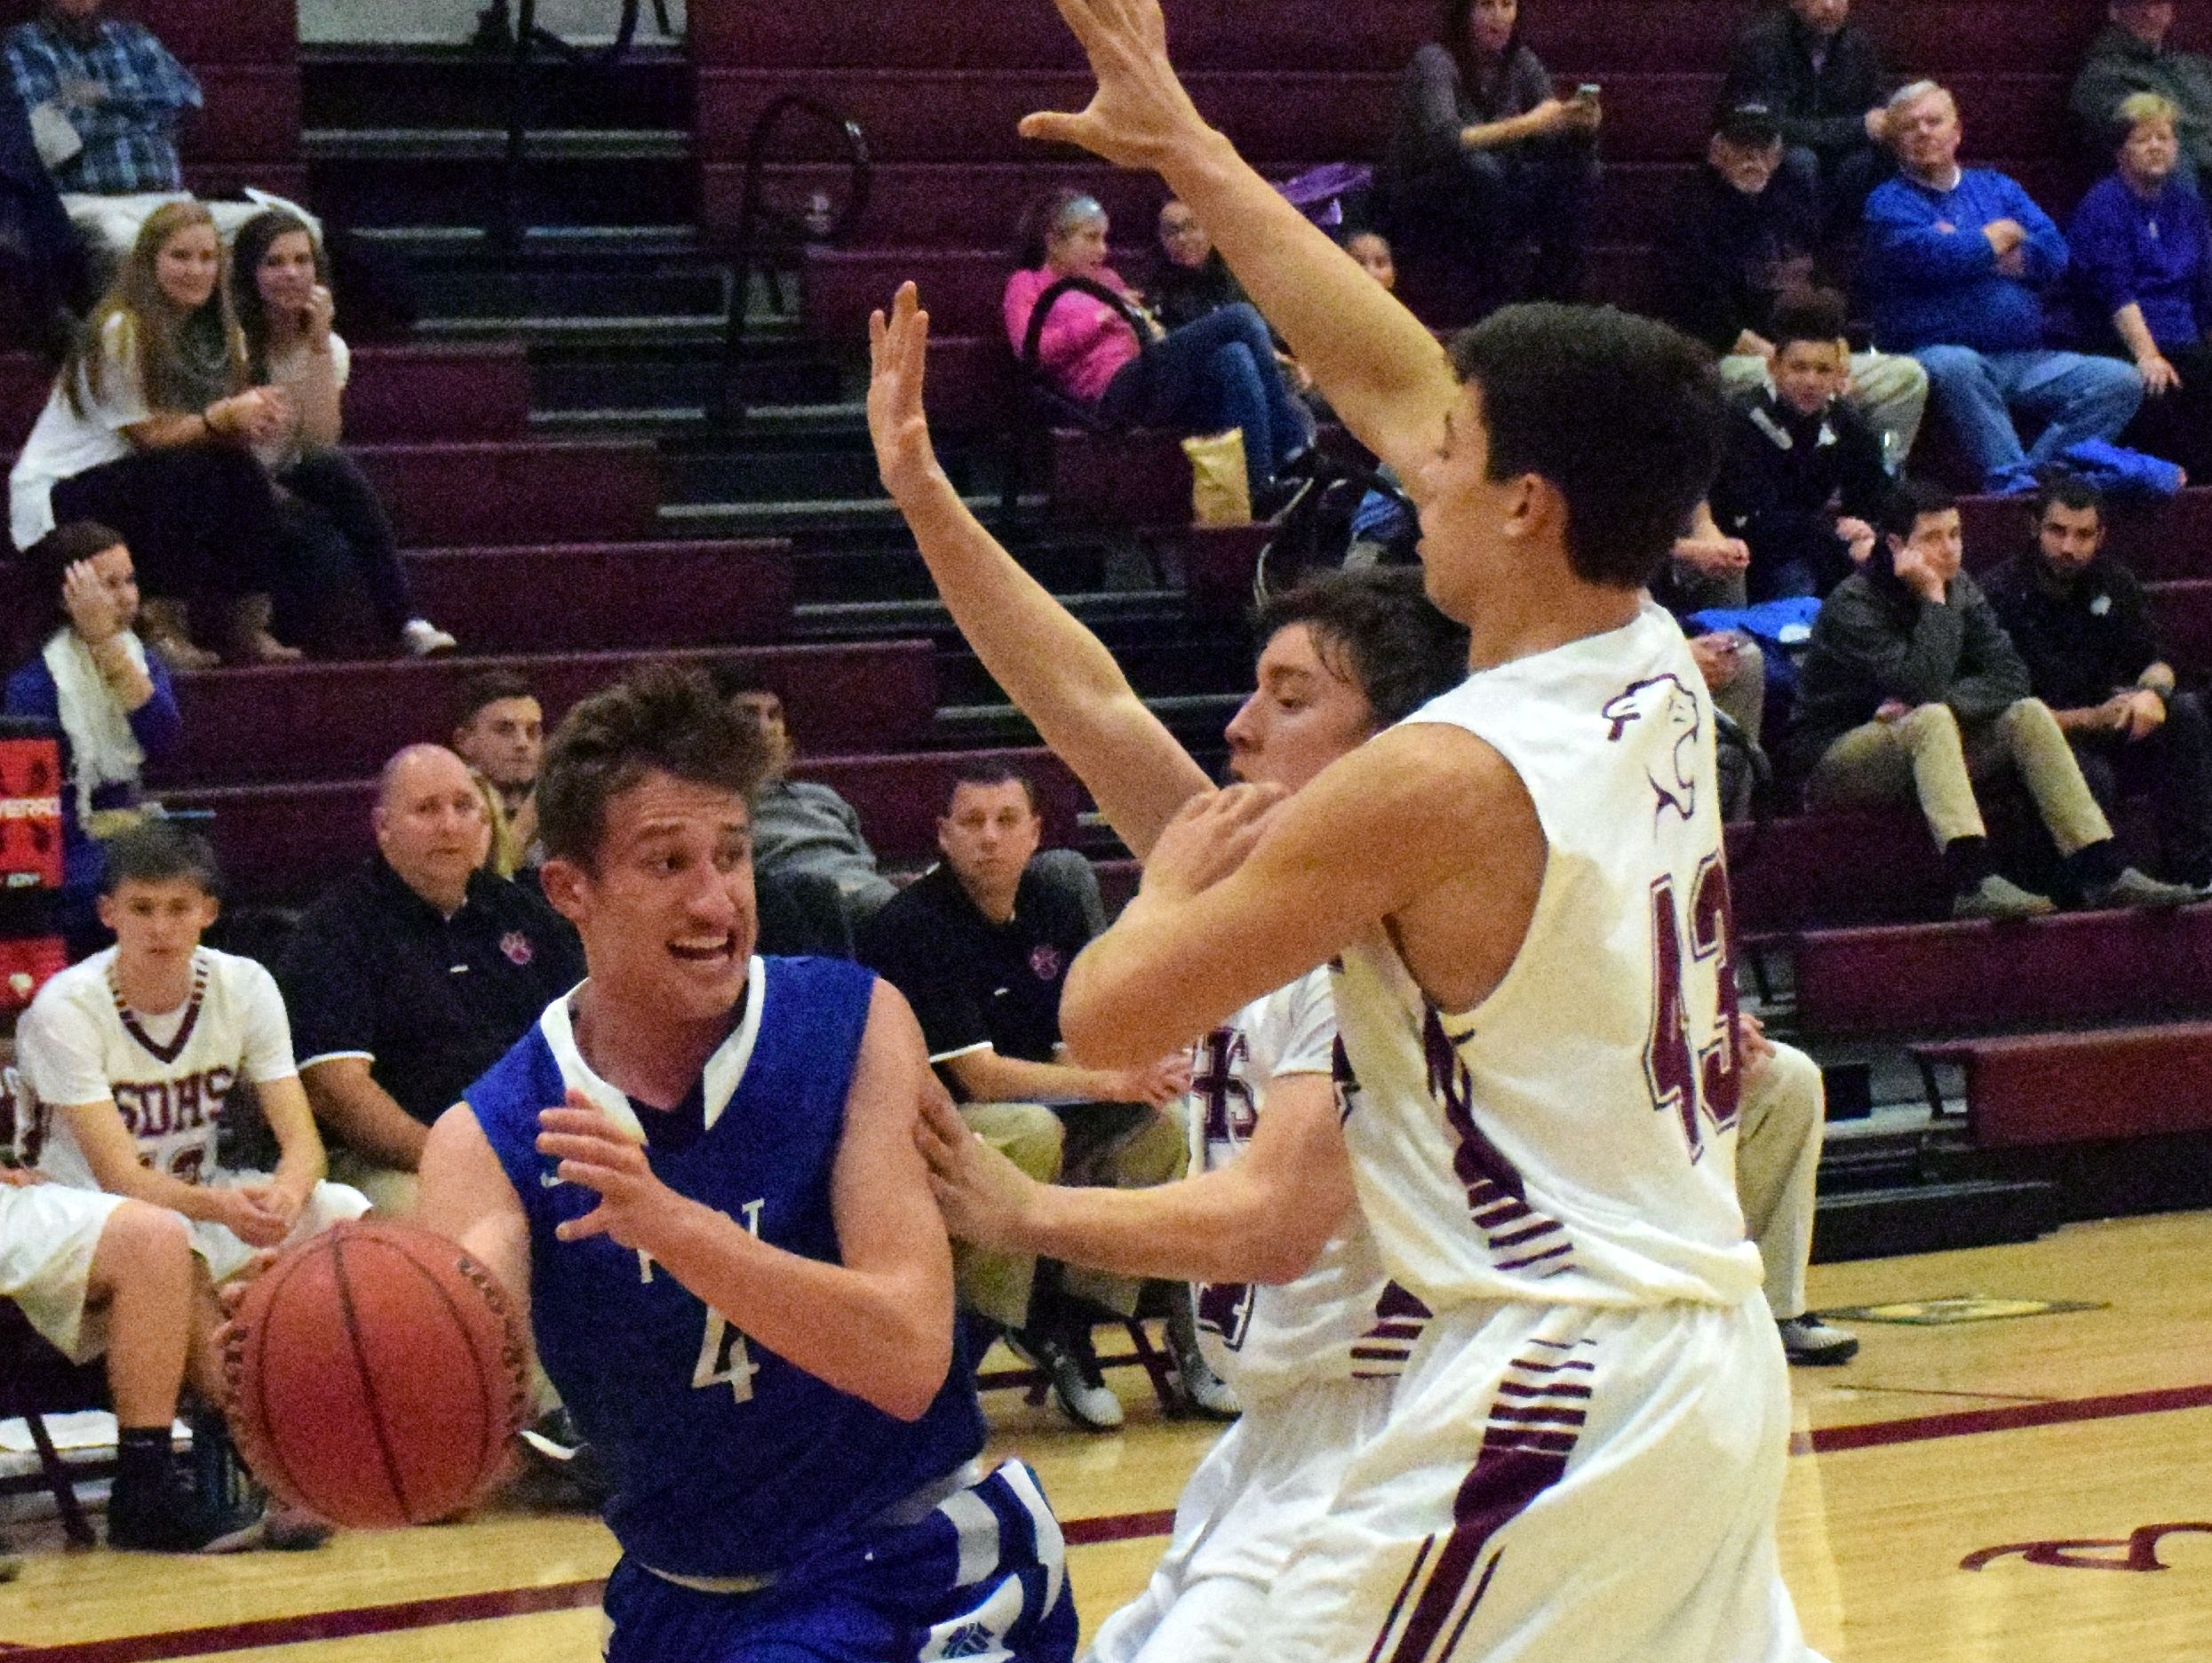 Fort Defiance's Jacob Jones, left, passes around Stuarts Draft's Nick lasam, center, and Kasey Branch during the first half of their boys basketball game on Tuesday, Dec. 13, 2016, at Stuarts Draft High School in Stuarts Draft, Va.